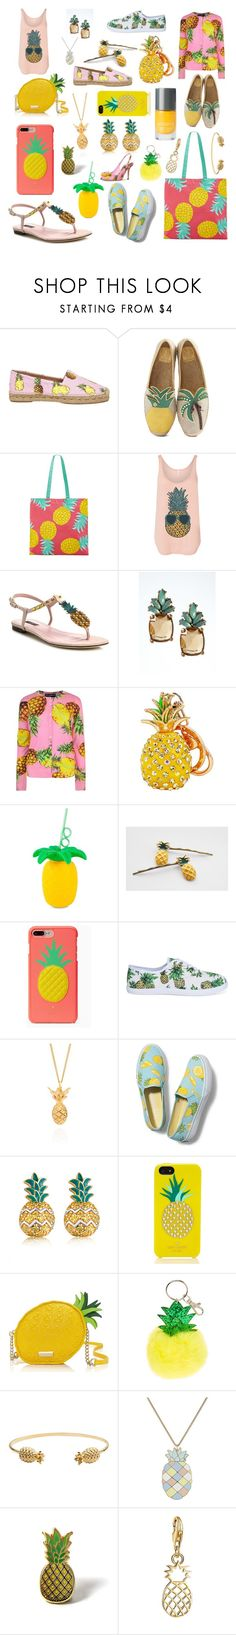 """Stand Tall, Wear a Crown"" by heathersjams ❤ liked on Polyvore featuring Dolce&Gabbana, Tory Burch, Martha Stewart, Banana Republic, Sunnylife, Kate Spade, Lee Renee, Keds, MBLife.com and Rachel Jackson"